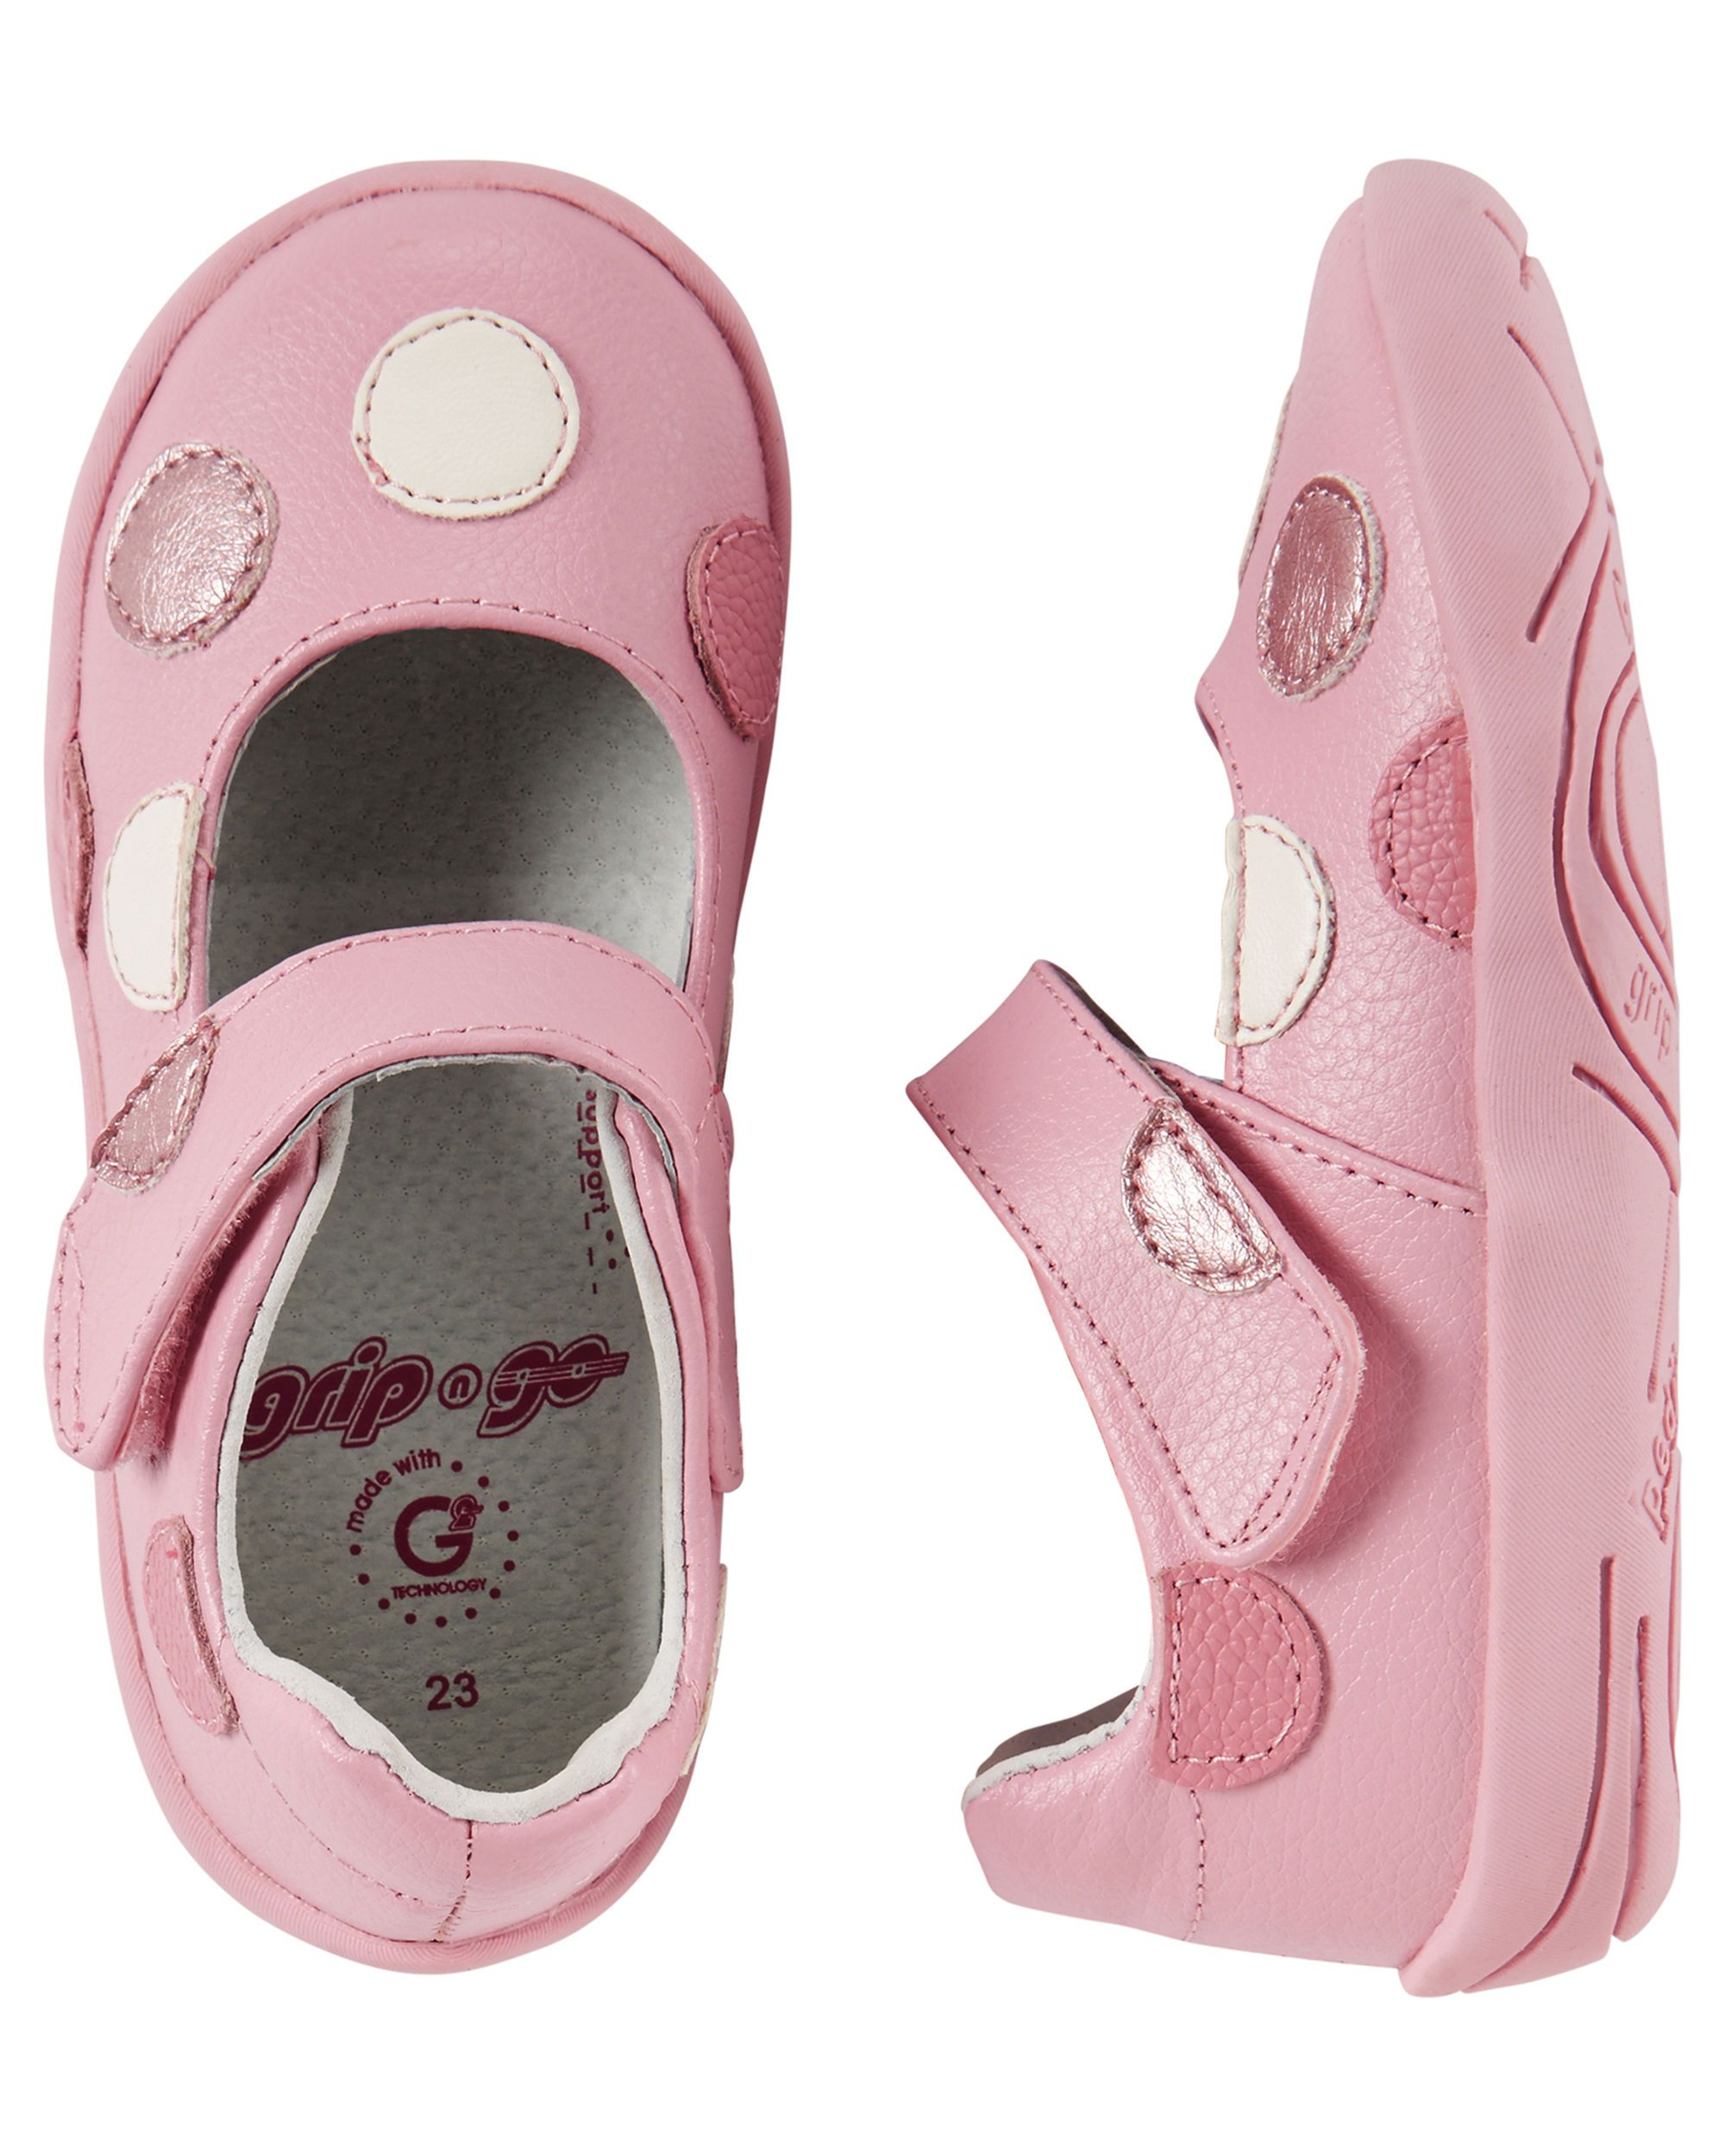 Pediped Grip n Go Giselle Mid Pink